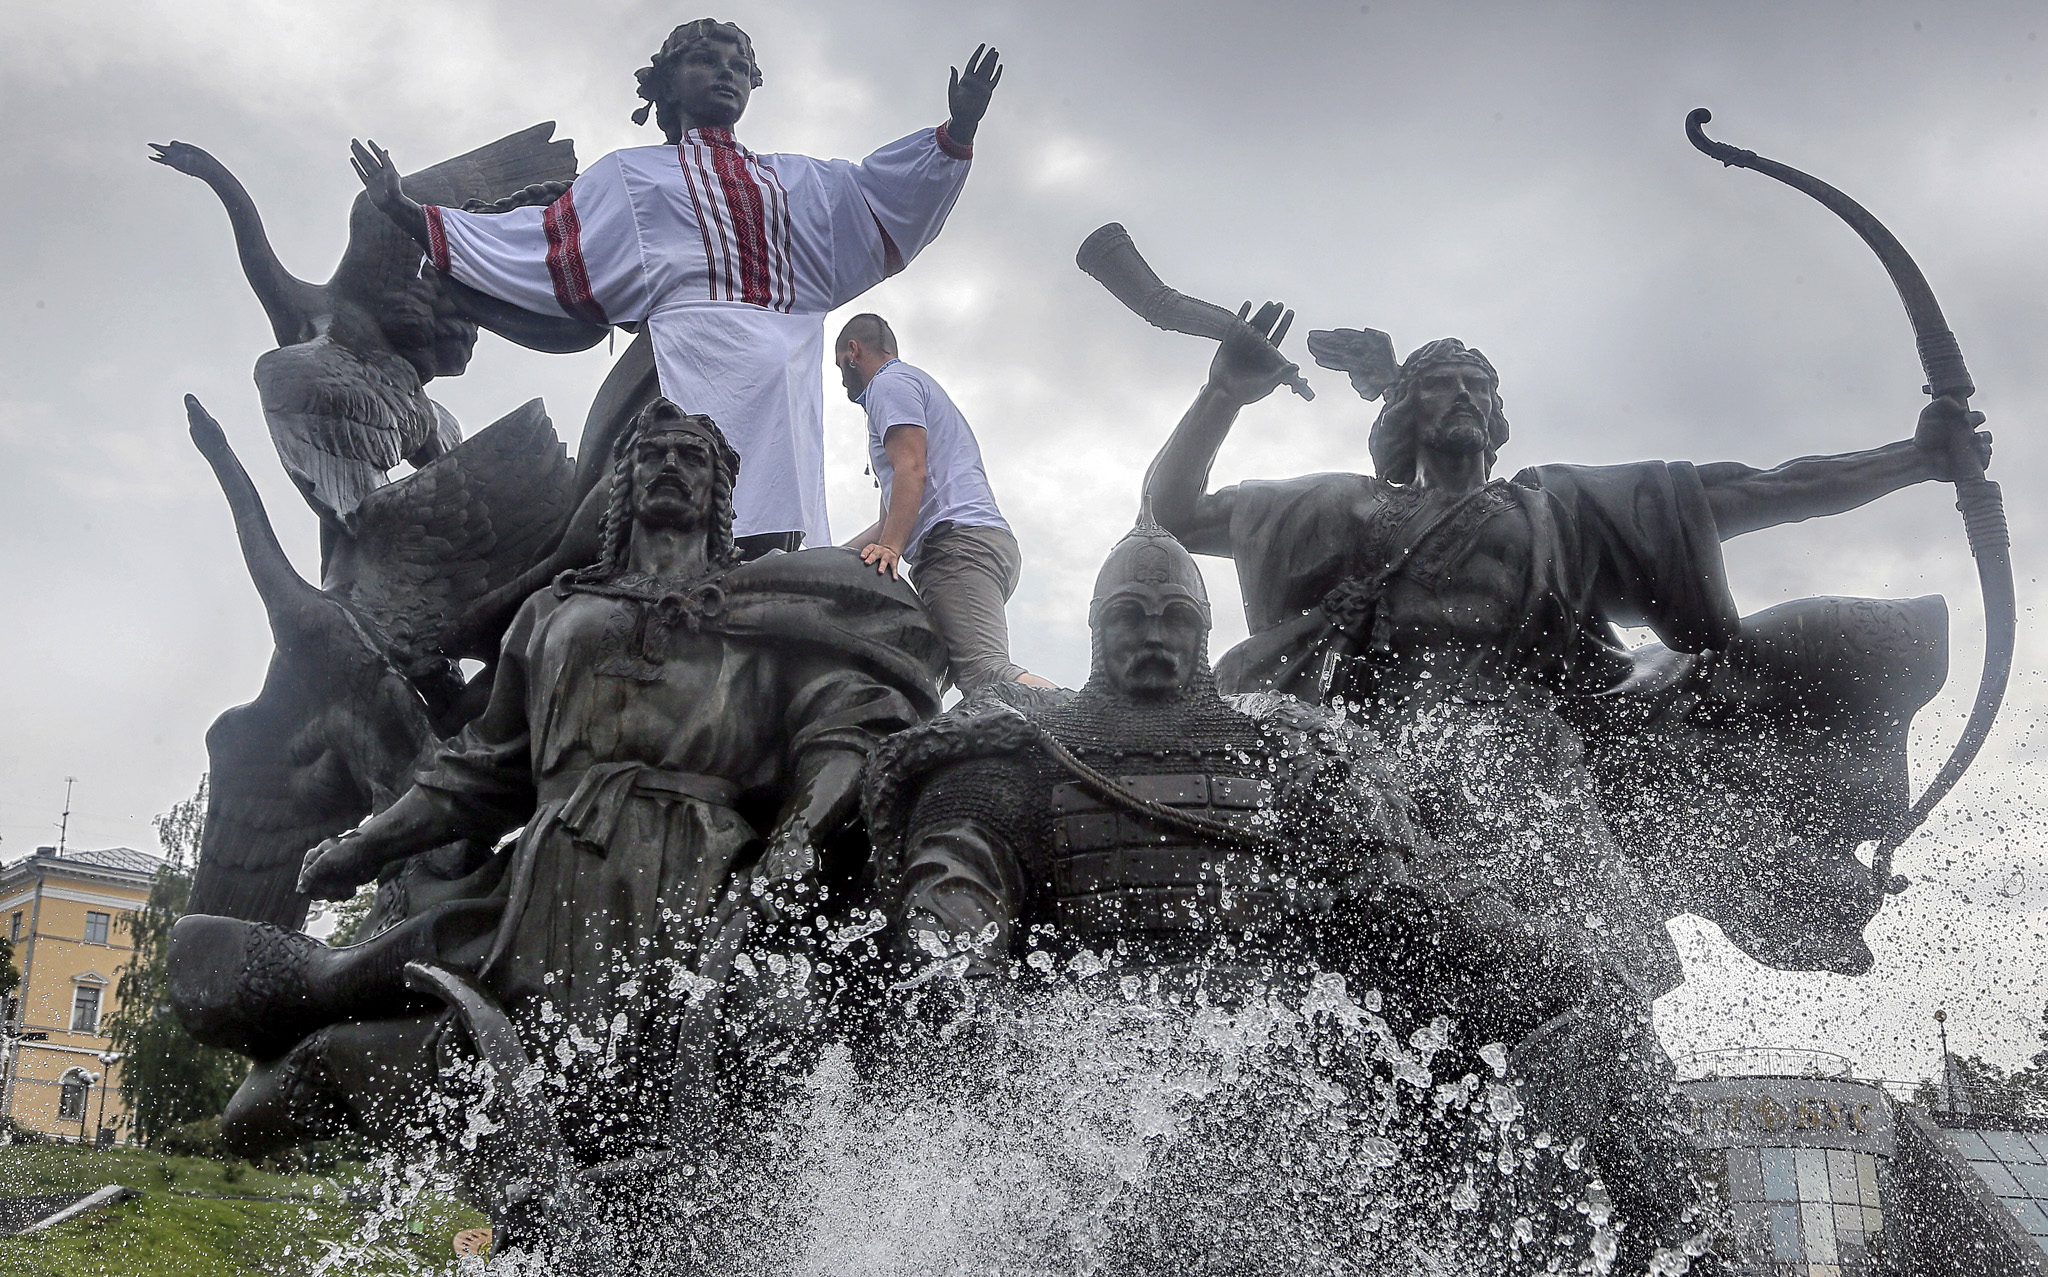 A man dresses a statue figure on the monument dedicated to Kiev city founders, in the national Ukrainian costume called Vyshyvanka,  on the Independence Square in Kiev, Ukraine, Thursday, May 19, 2016.  Ukrainians mark Vyshyvanka Day, named in honour of the Slavic traditional clothing Vyshyvanka. (AP Photo/Efrem Lukatsky)